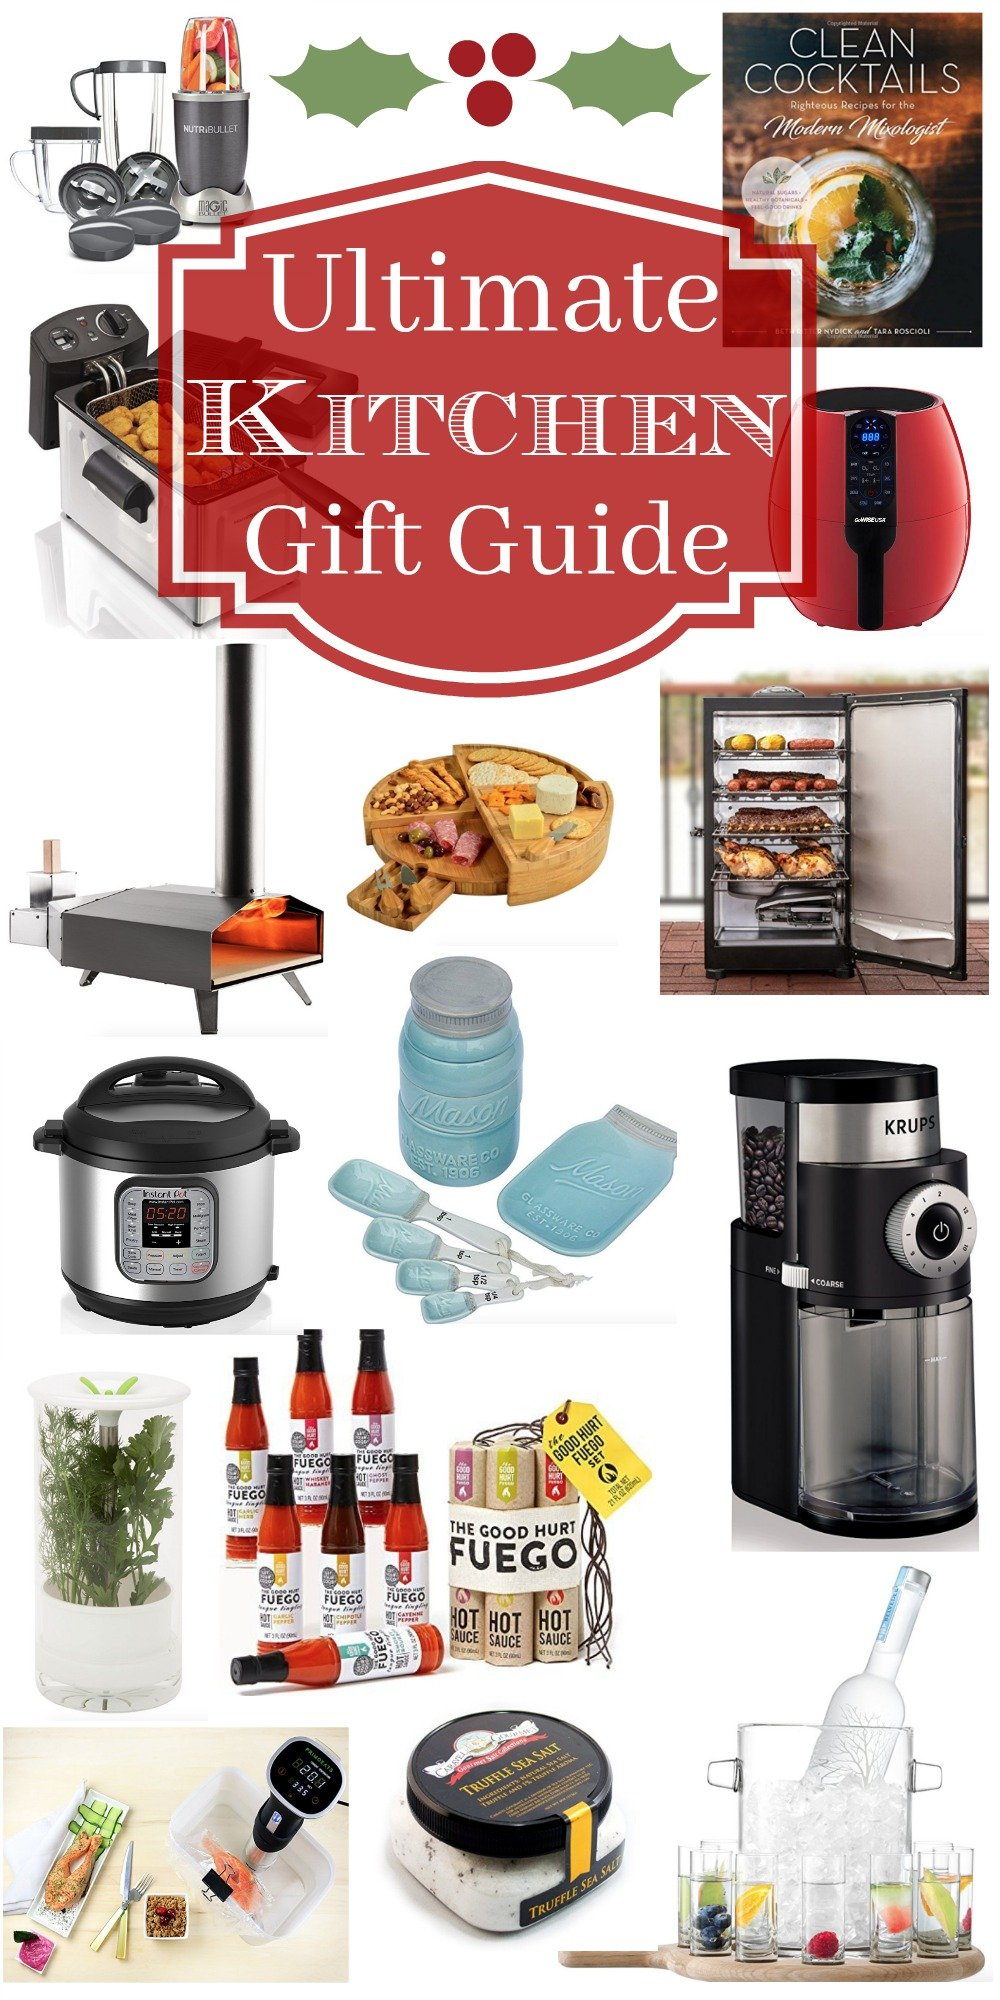 Ultimate Kitchen Gift Guide • Domestic Superhero